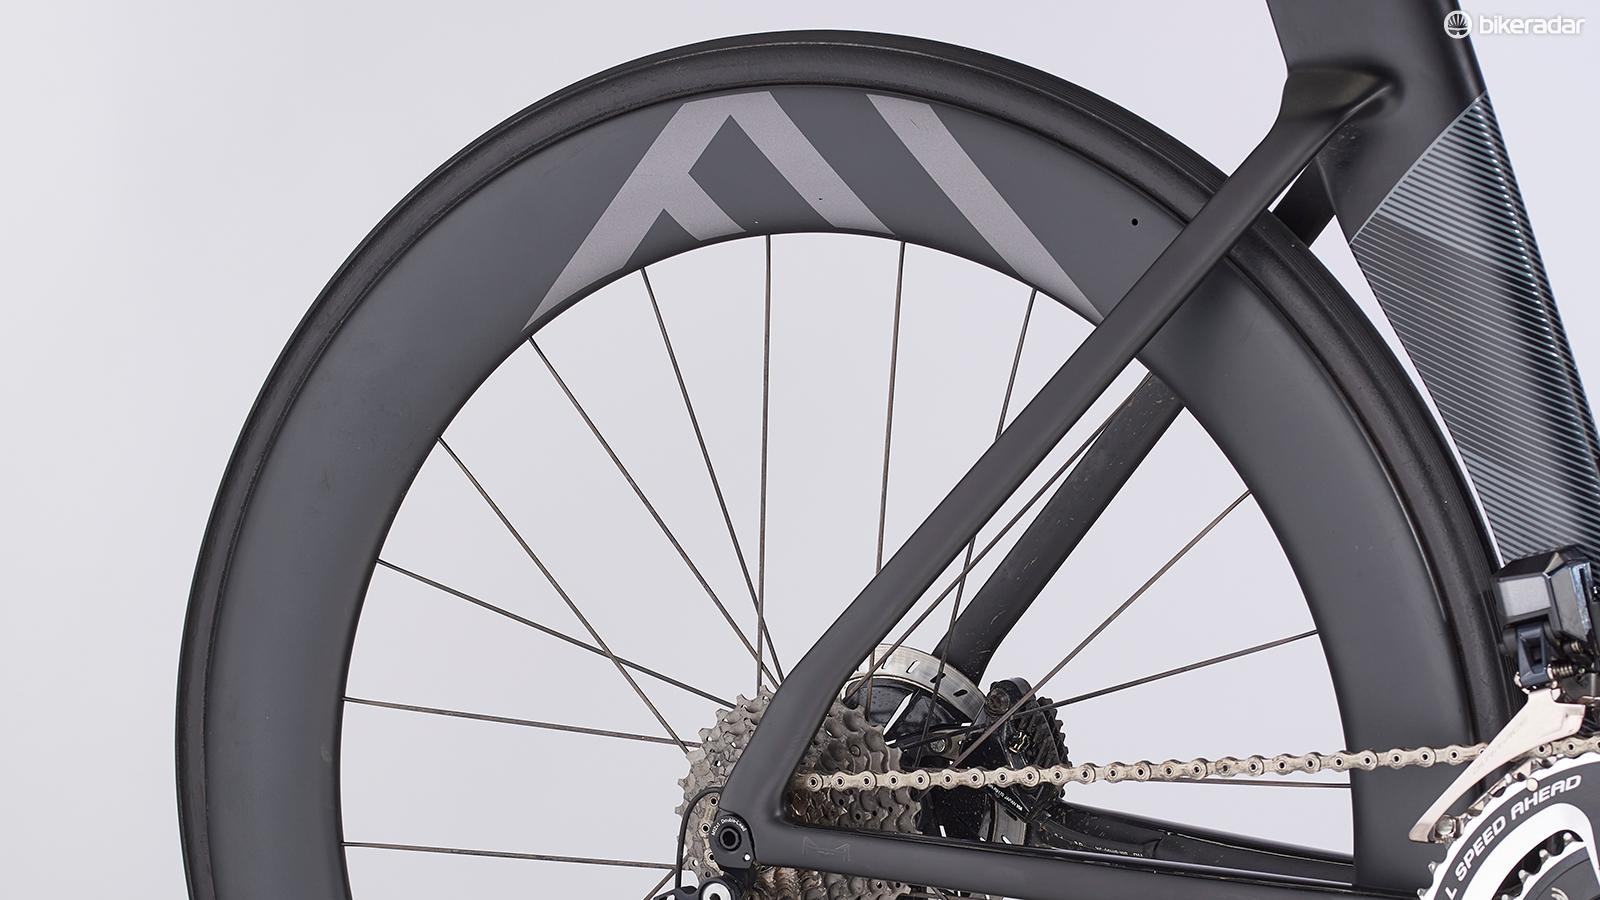 The seriously deep Knot 64 wheels are what you'd expect to find on a TT or triathlon bike